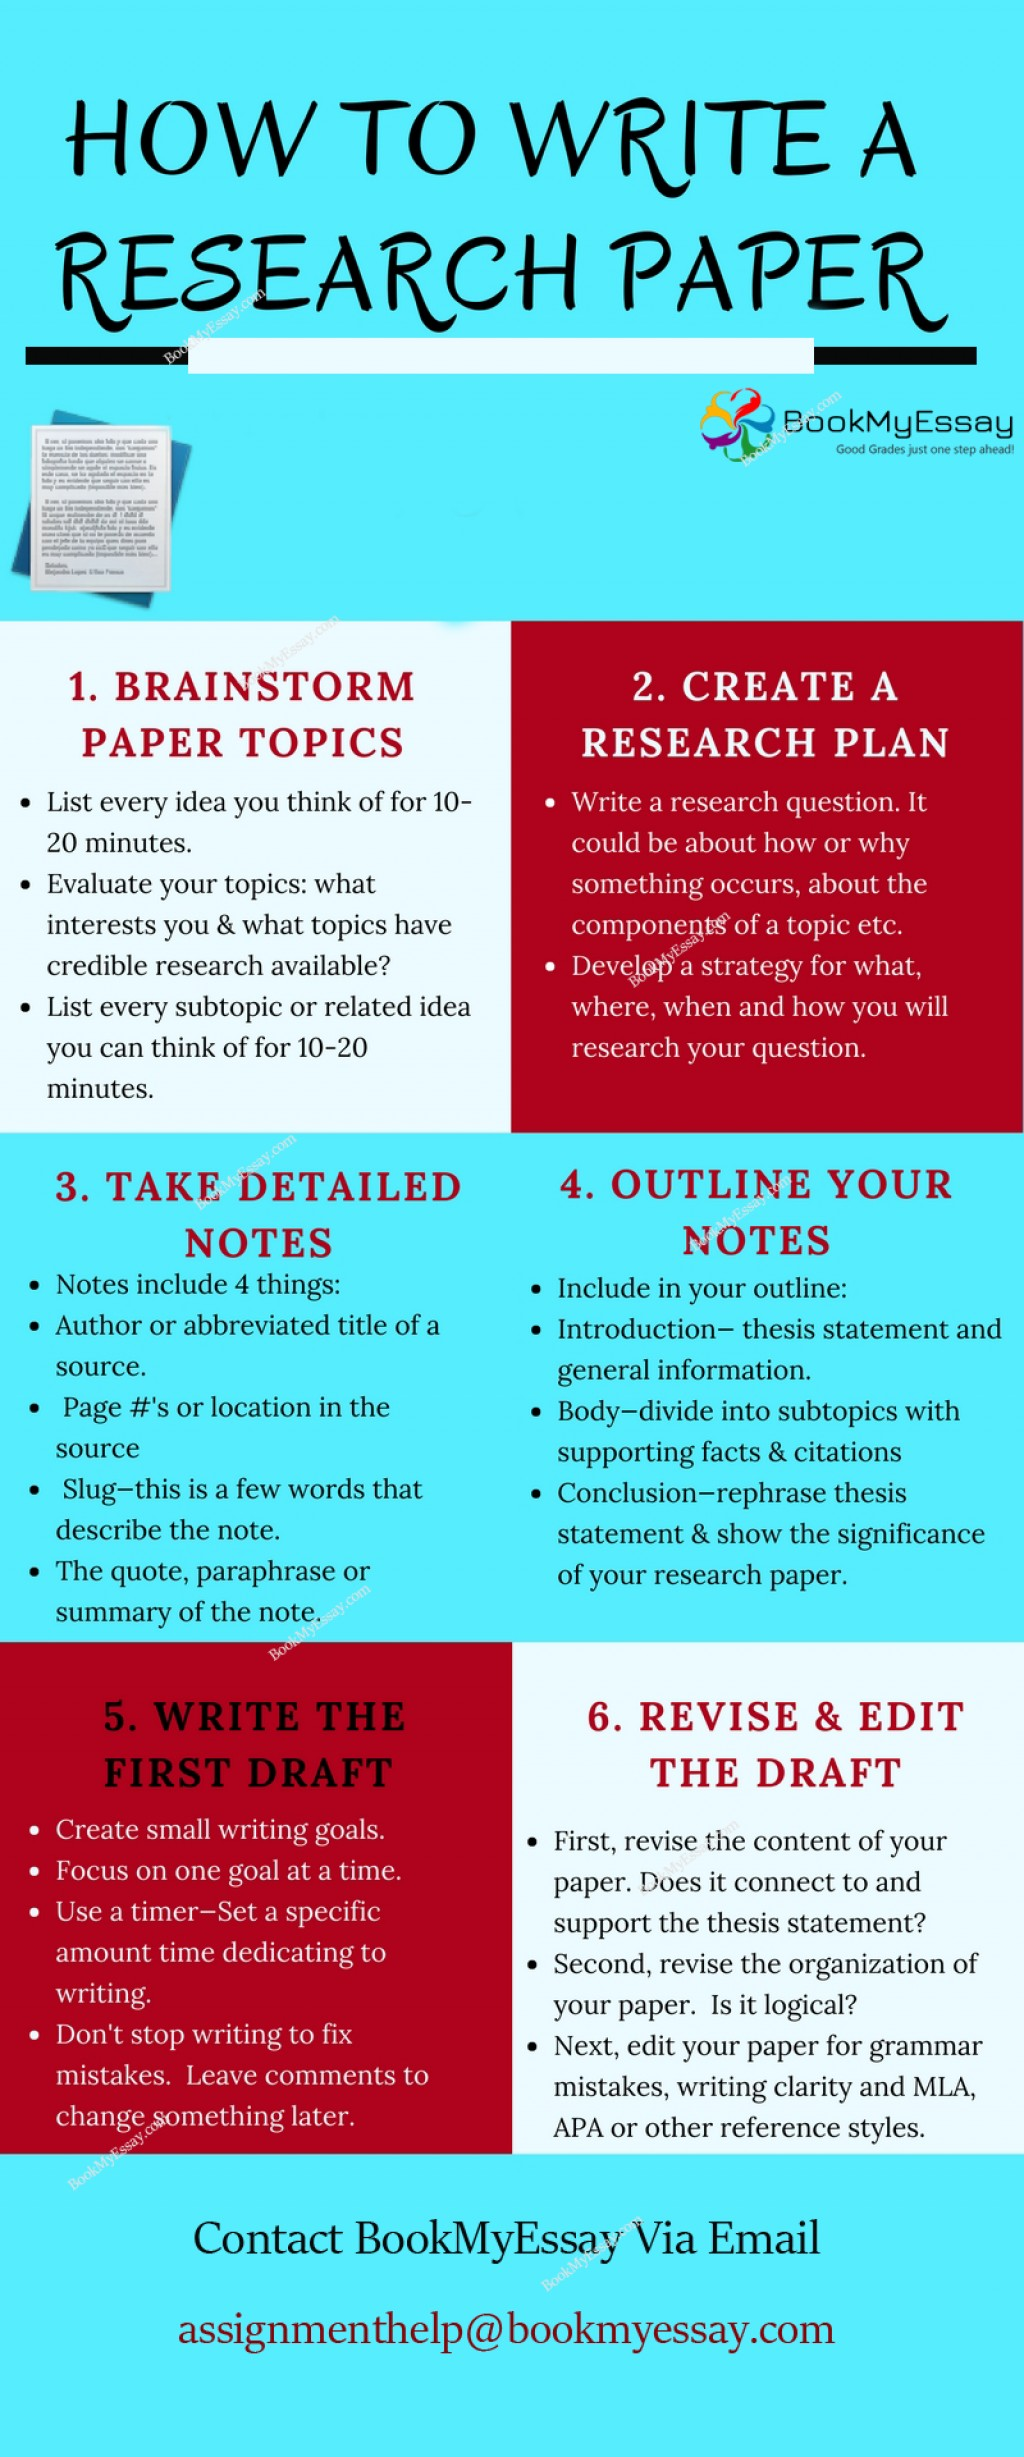 003 Research Paper Writing Service Dreaded Services In India Best Academic Online Large